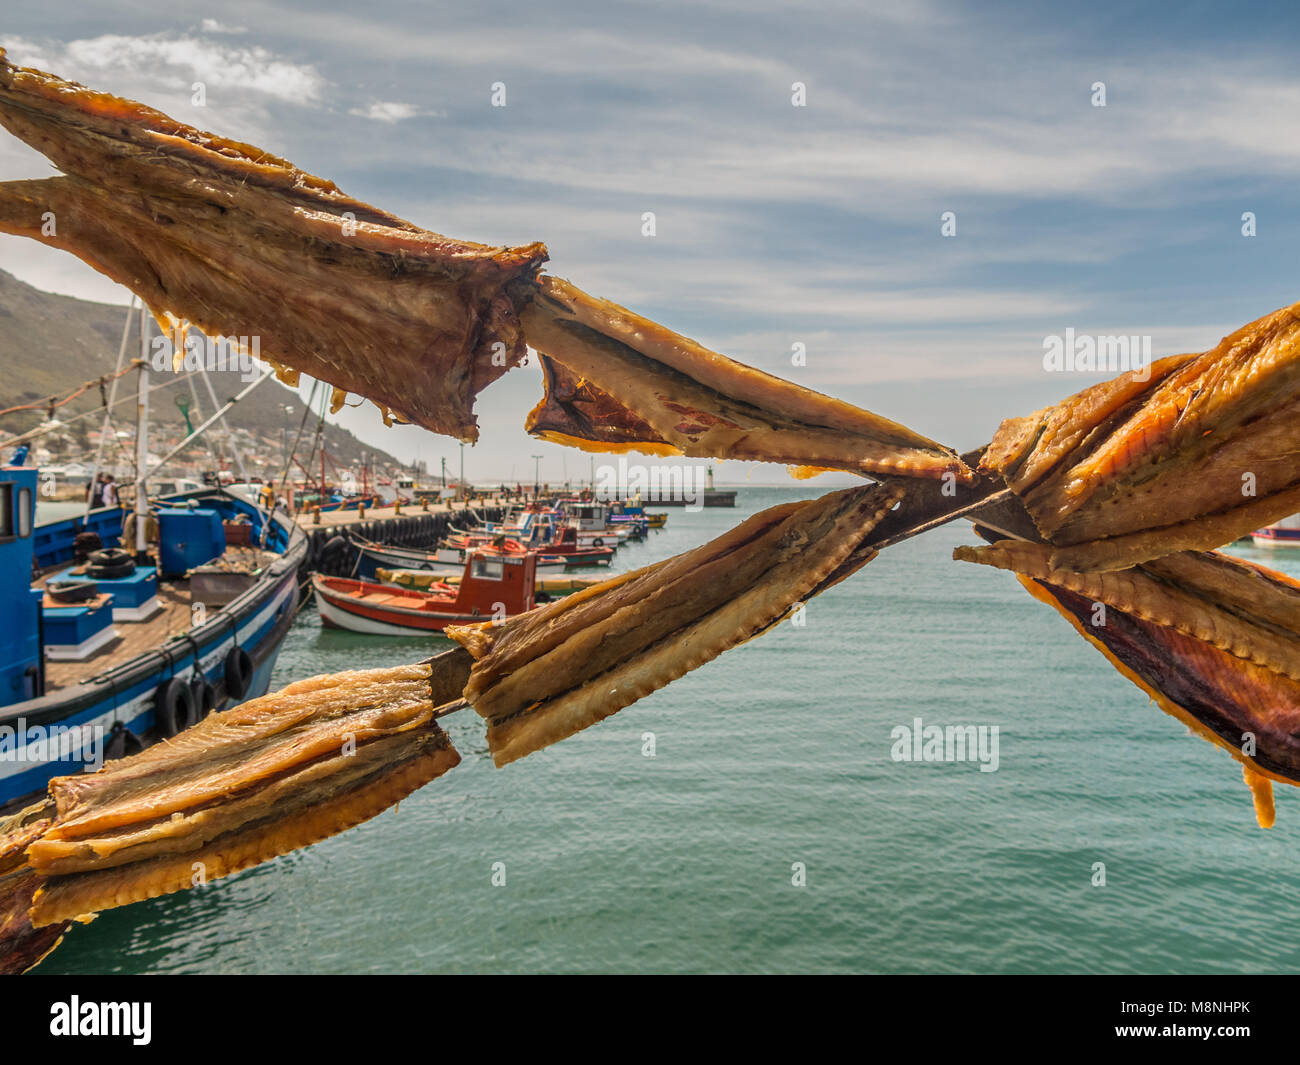 Snoek (baracuda) salted and drying in the sun at a local fish market. Considered a delicacy by some ... Cape Town, - Stock Image